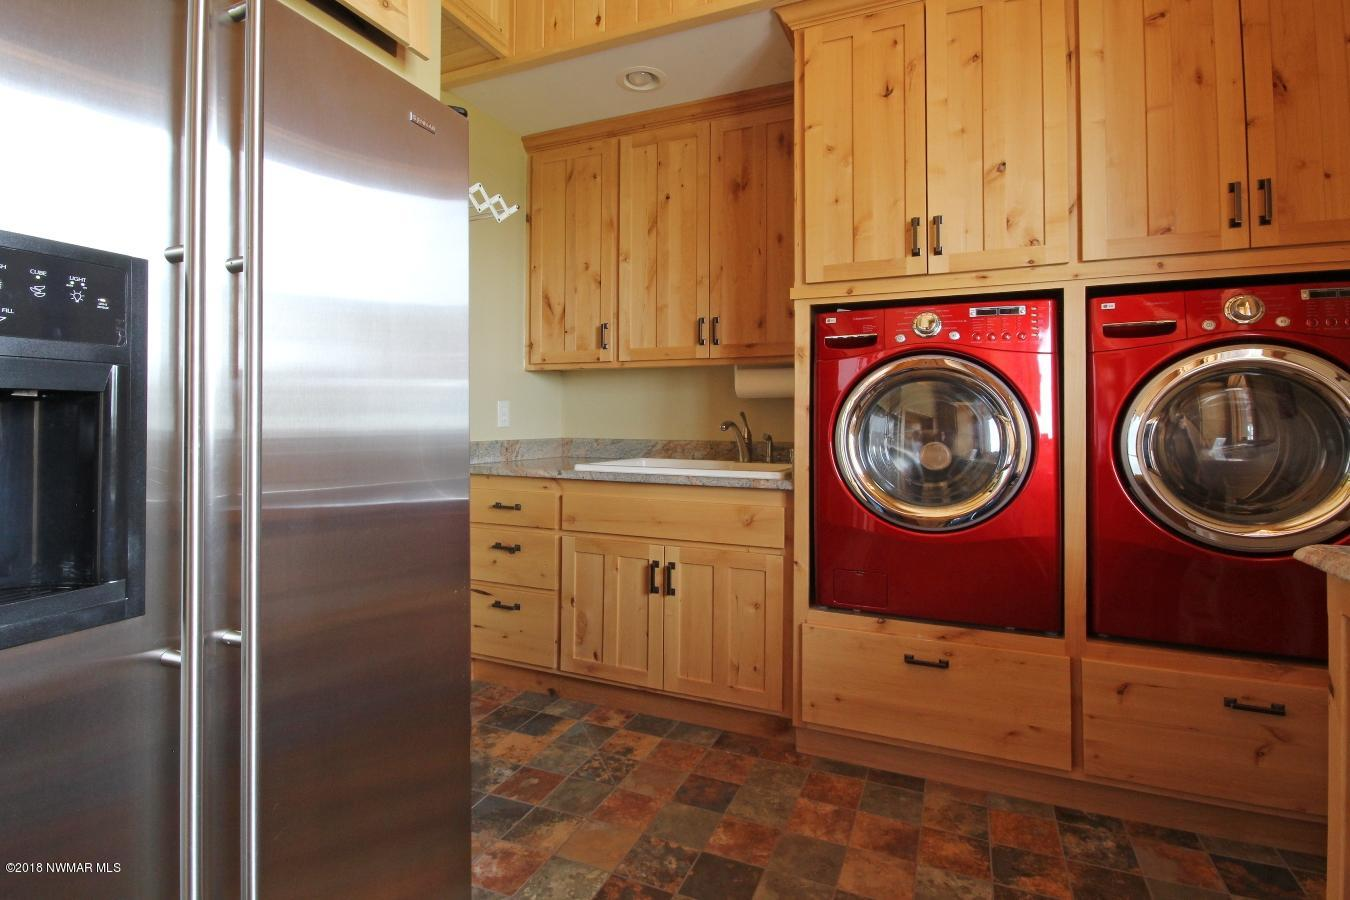 LG washer and dryer in the laundry room with granite folding area and overflow/beverage refrigerator and beach storage.